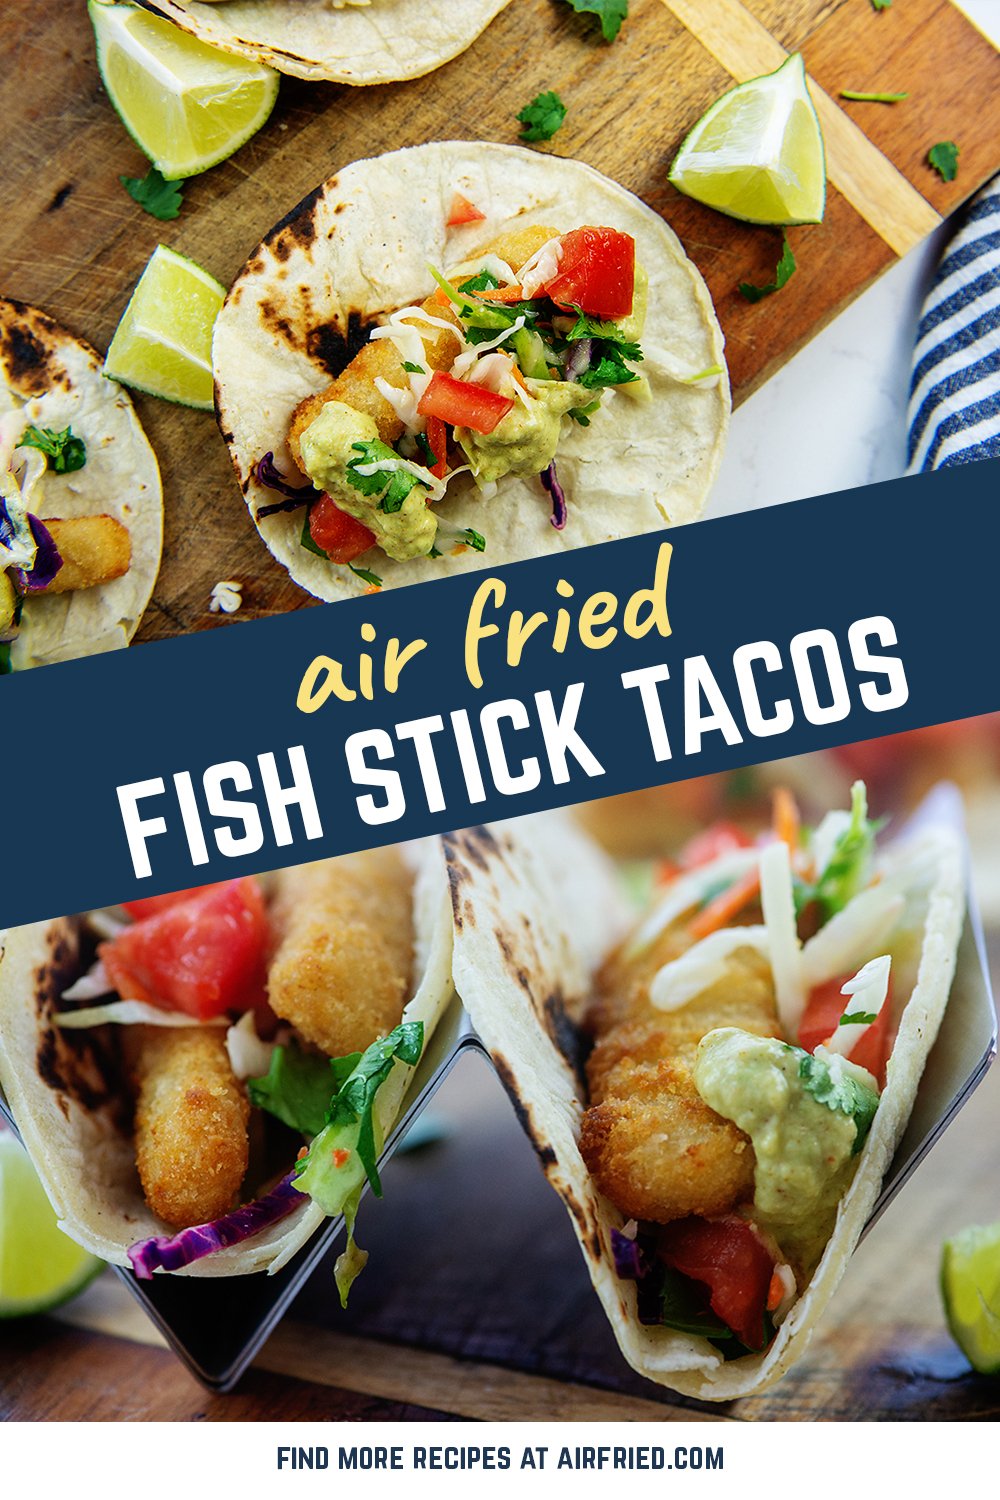 These fish stick tacos are so good and so easy to make they will become a family favorite go-to meal.  I am sure of it!